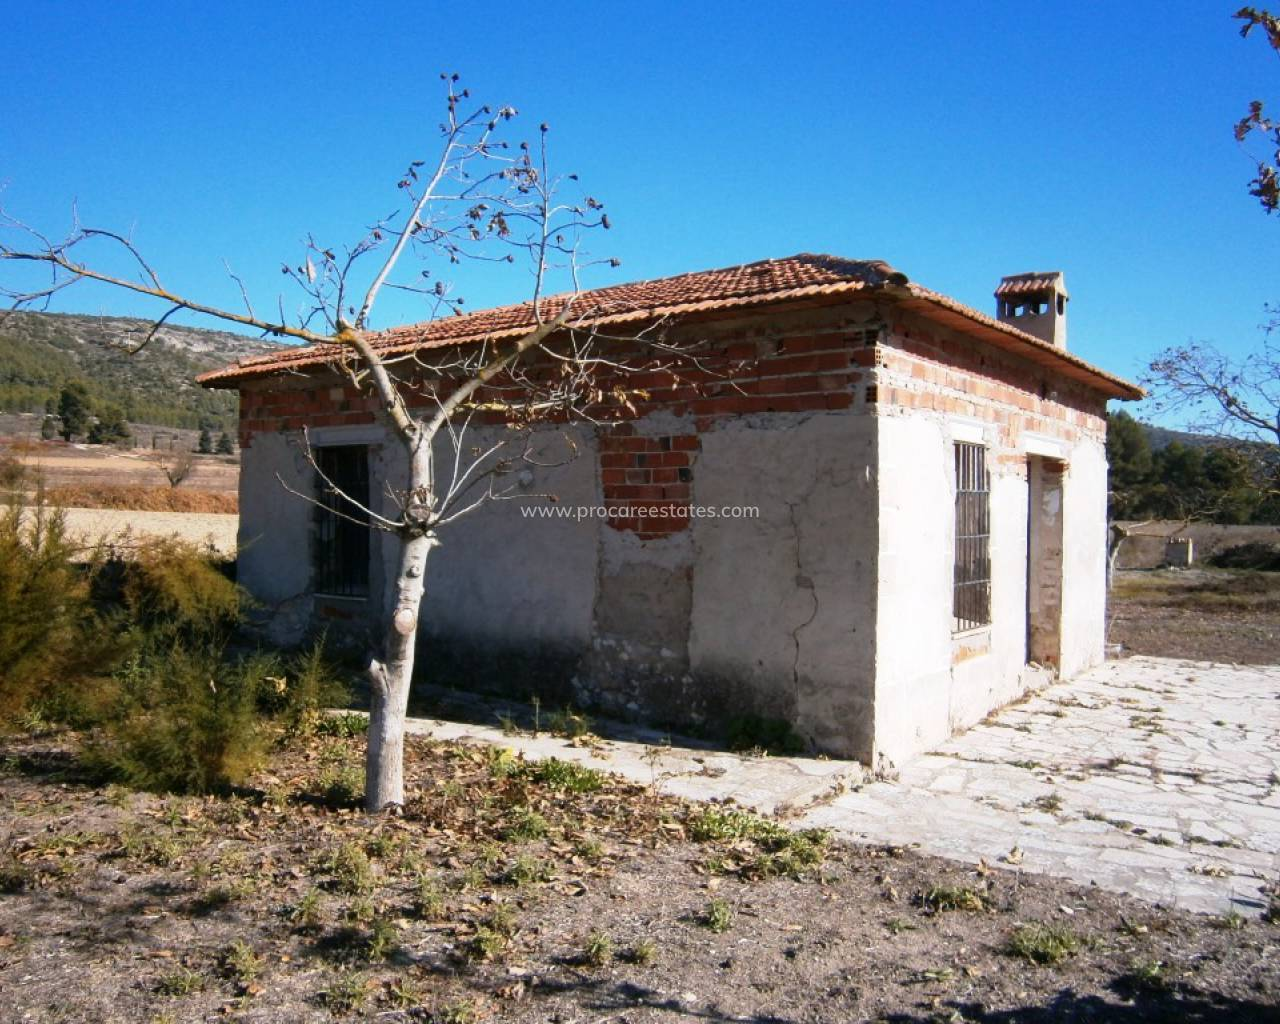 Revente - Country Property - Agres